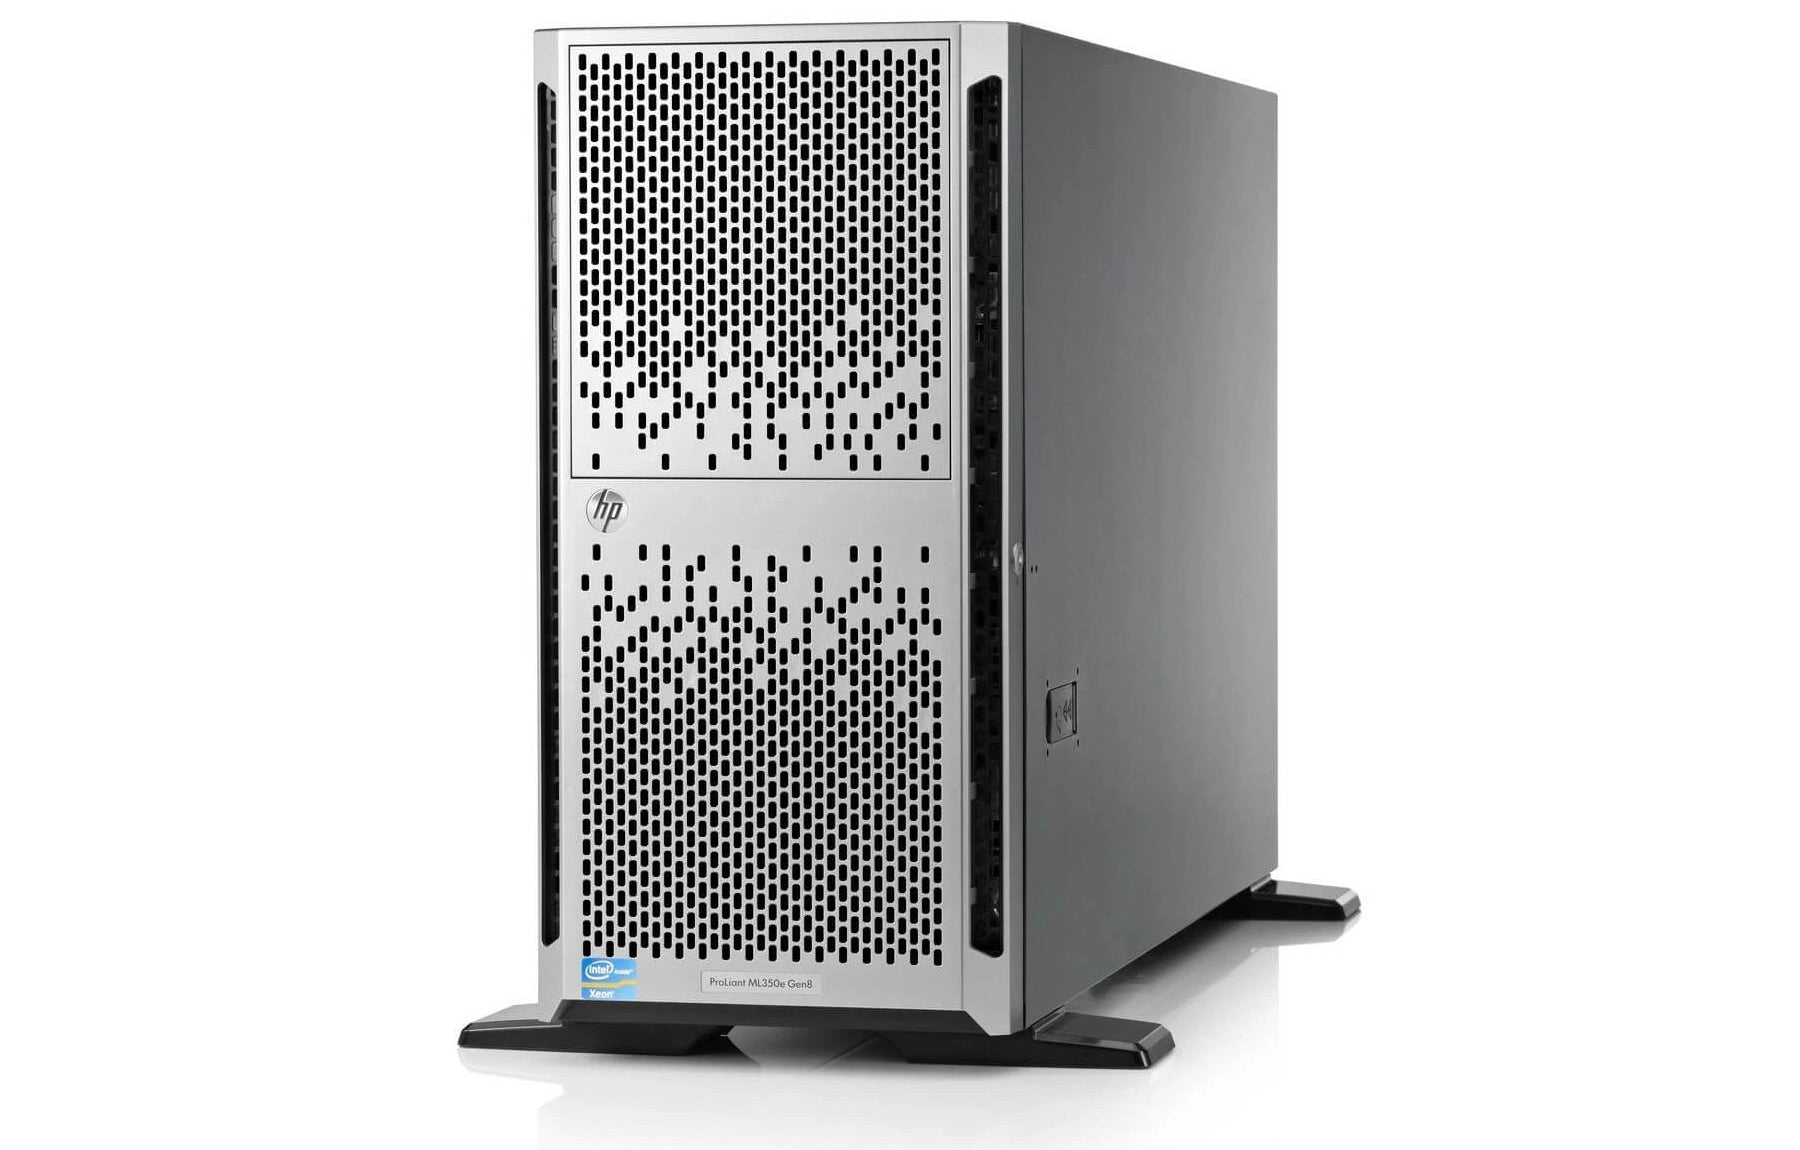 Refurbished HPE ProLiant ML350e Gen8 Configure to Order Rack Tower Server